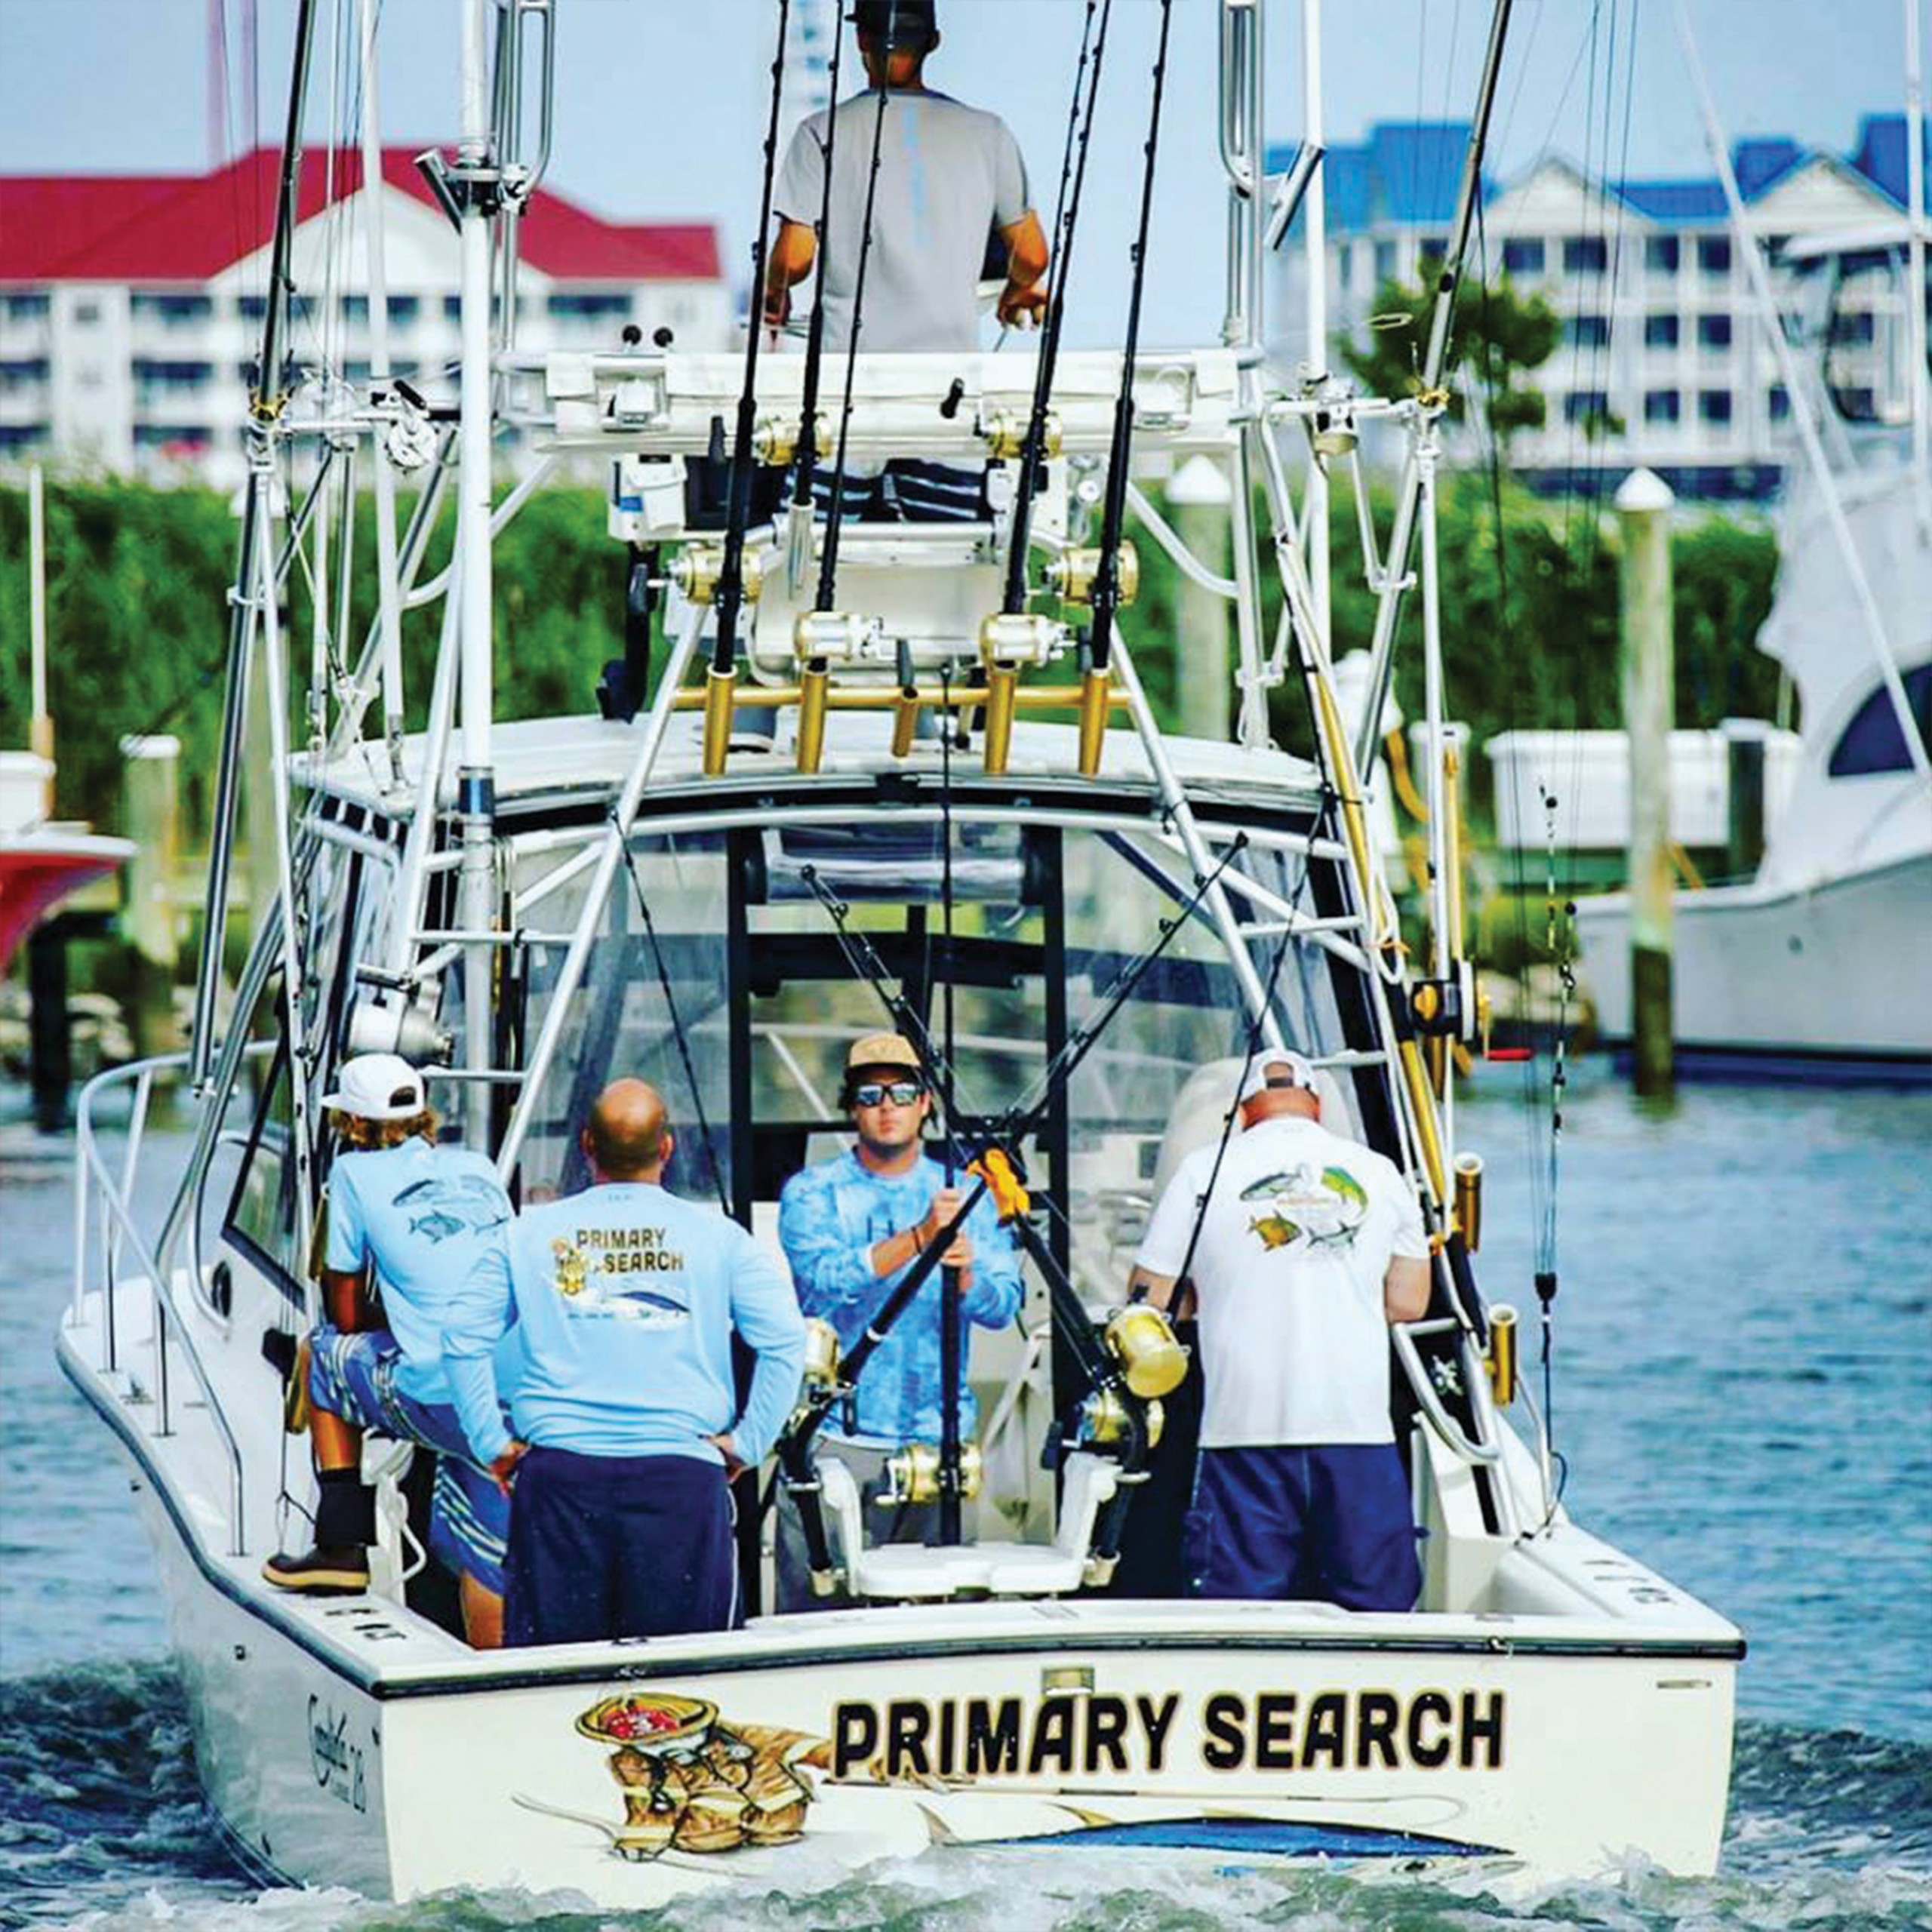 Primary Search boat on the water